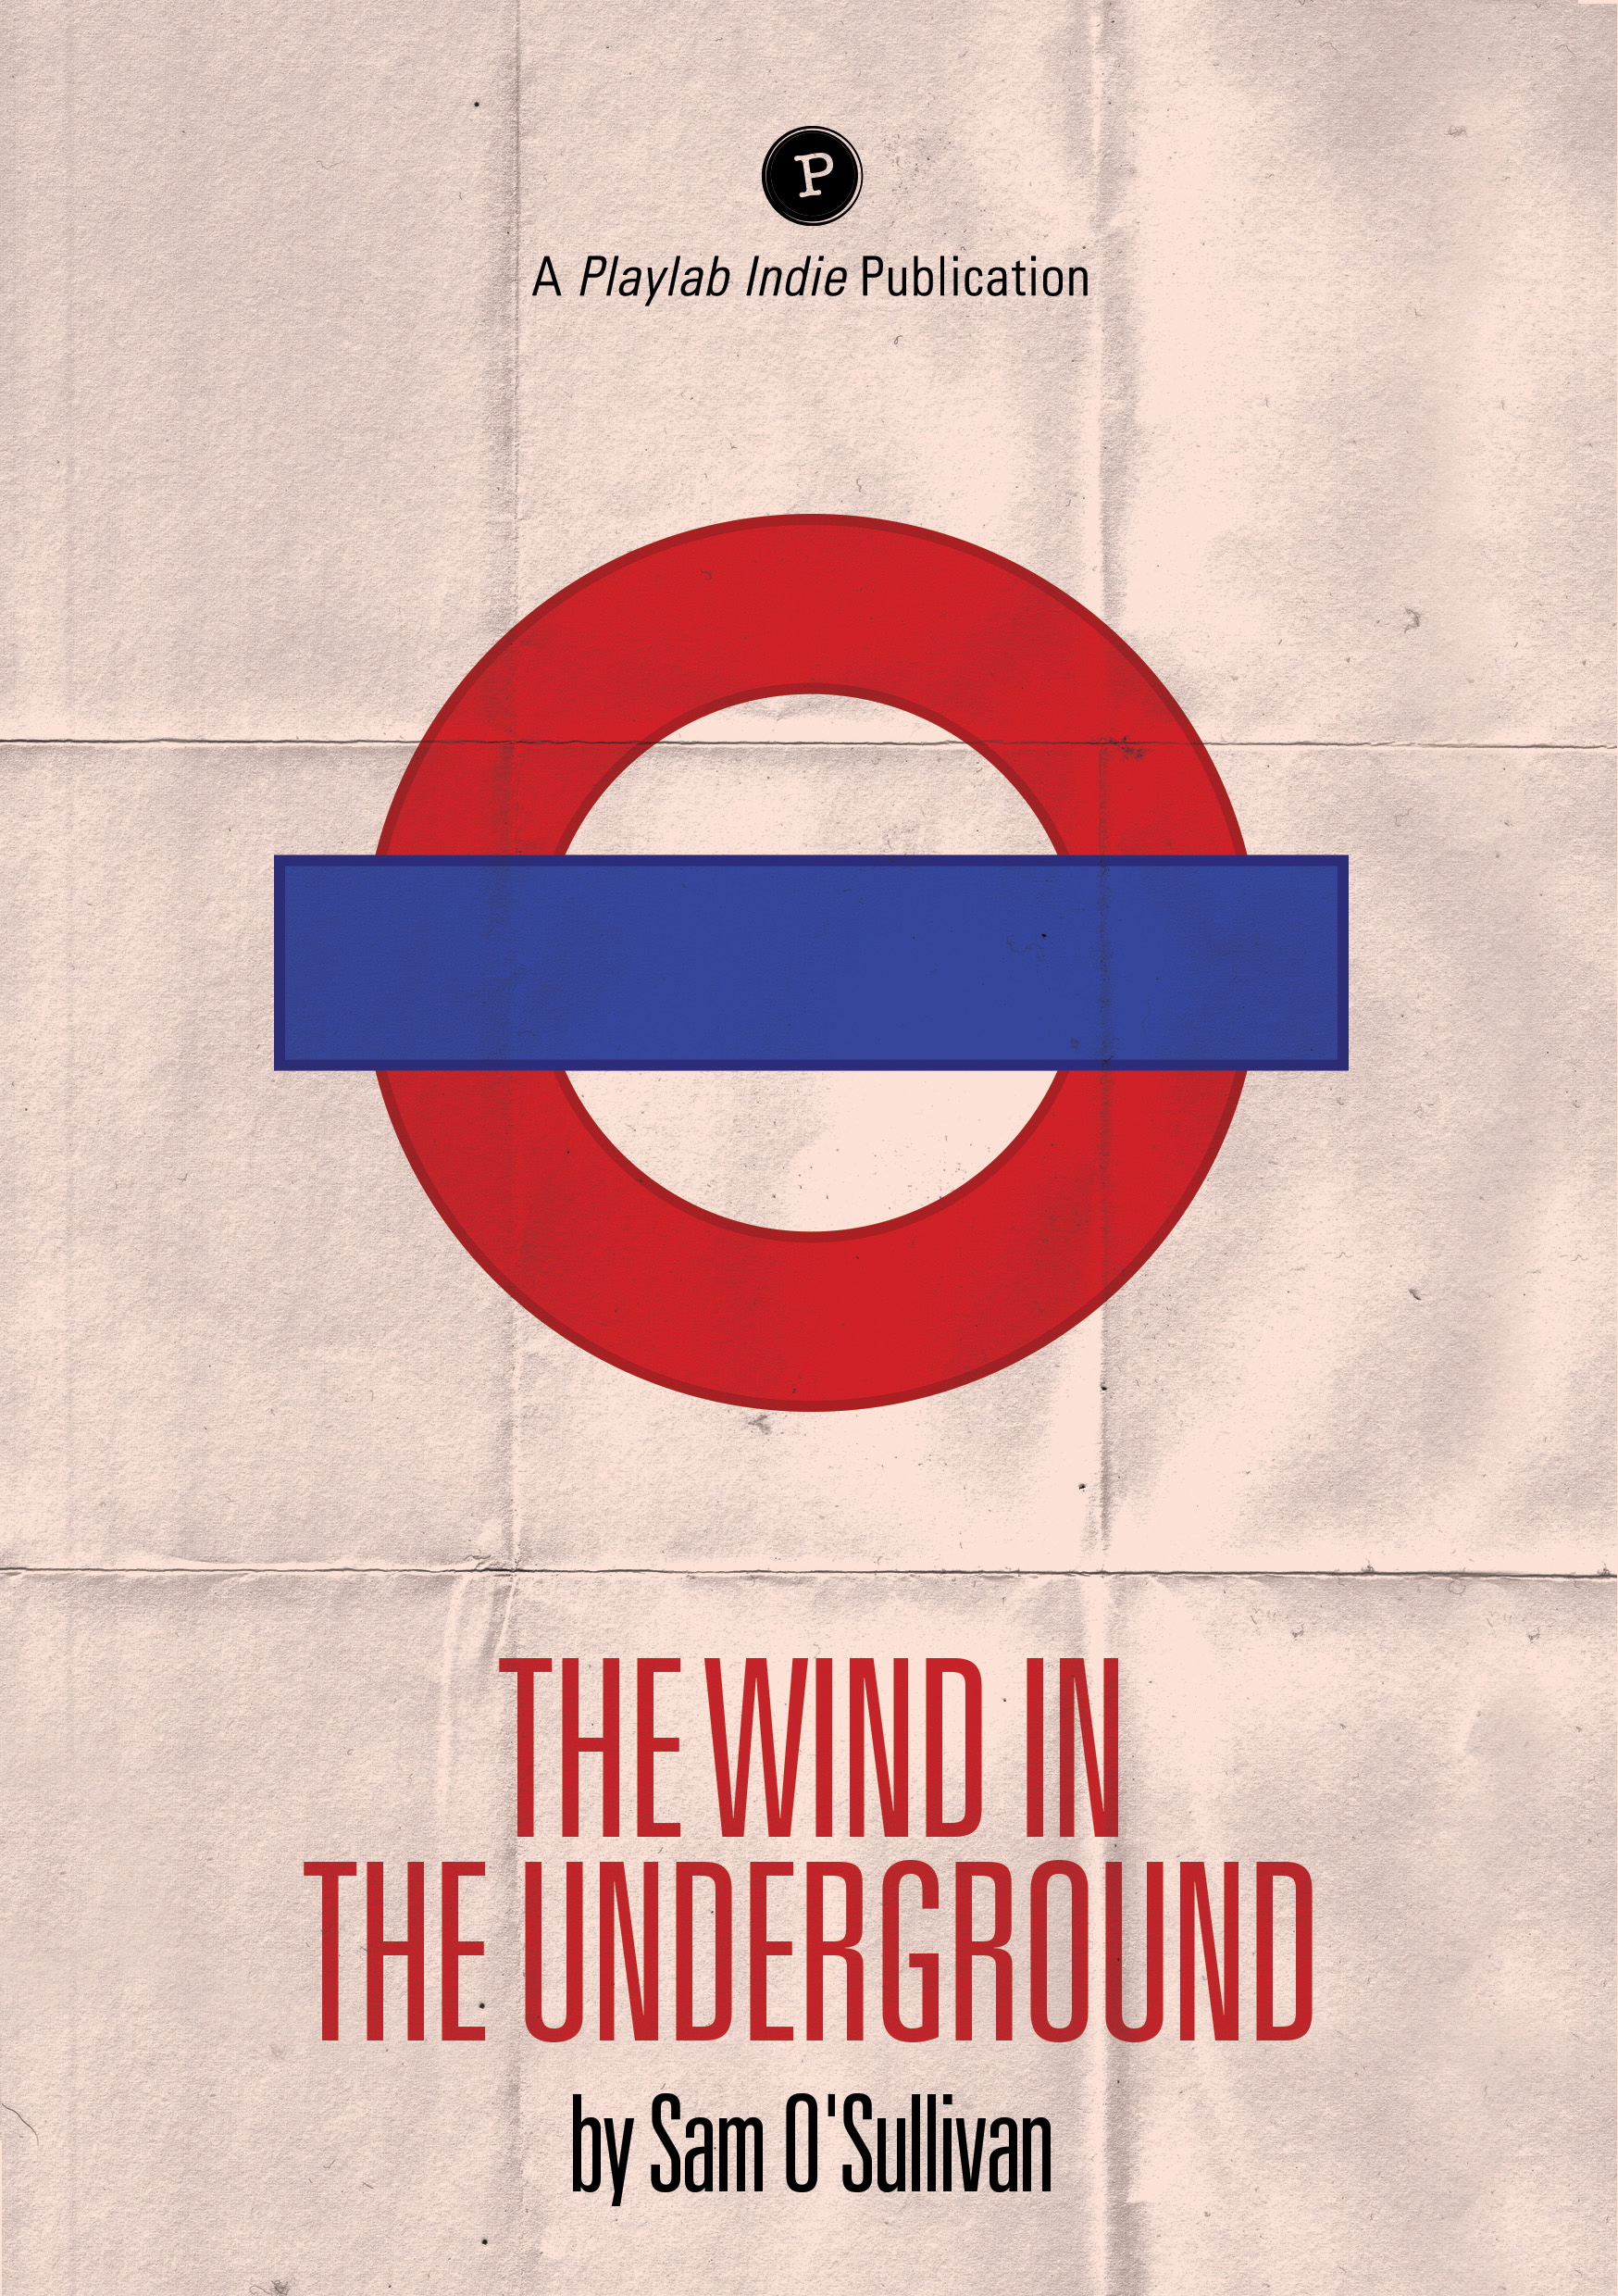 rgb windintheunderground_playlab cover_21mar19.jpg